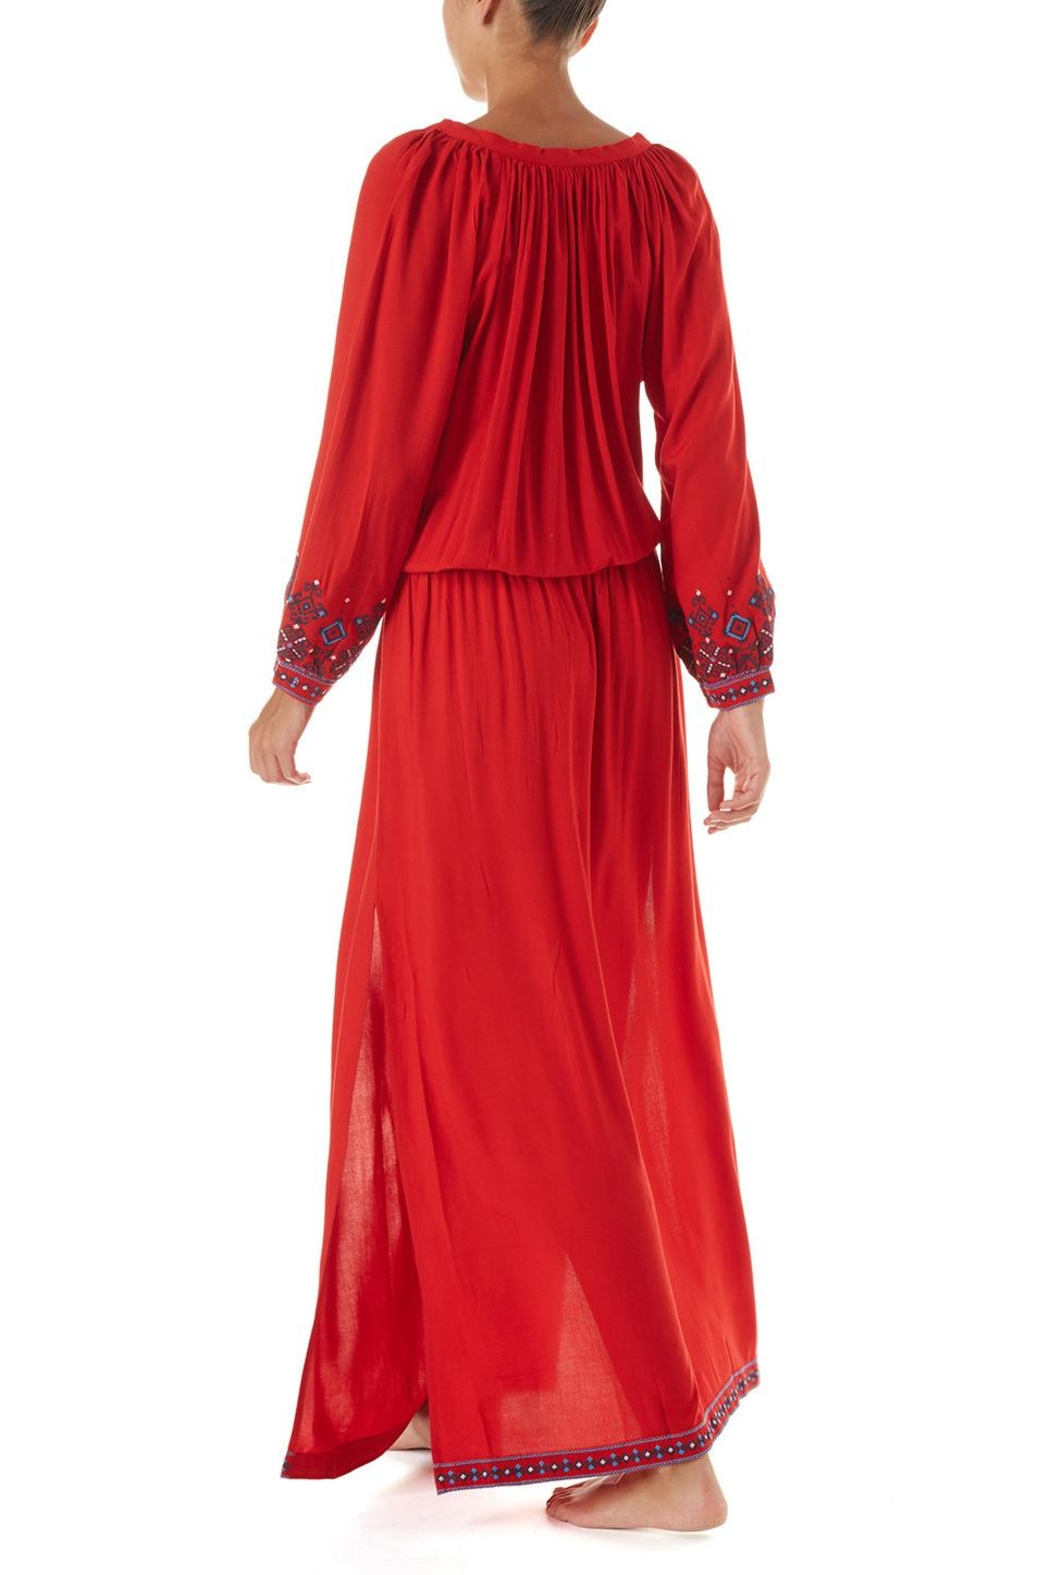 Melissa Odabash Sienna Maxi Dress - Side Cropped Image